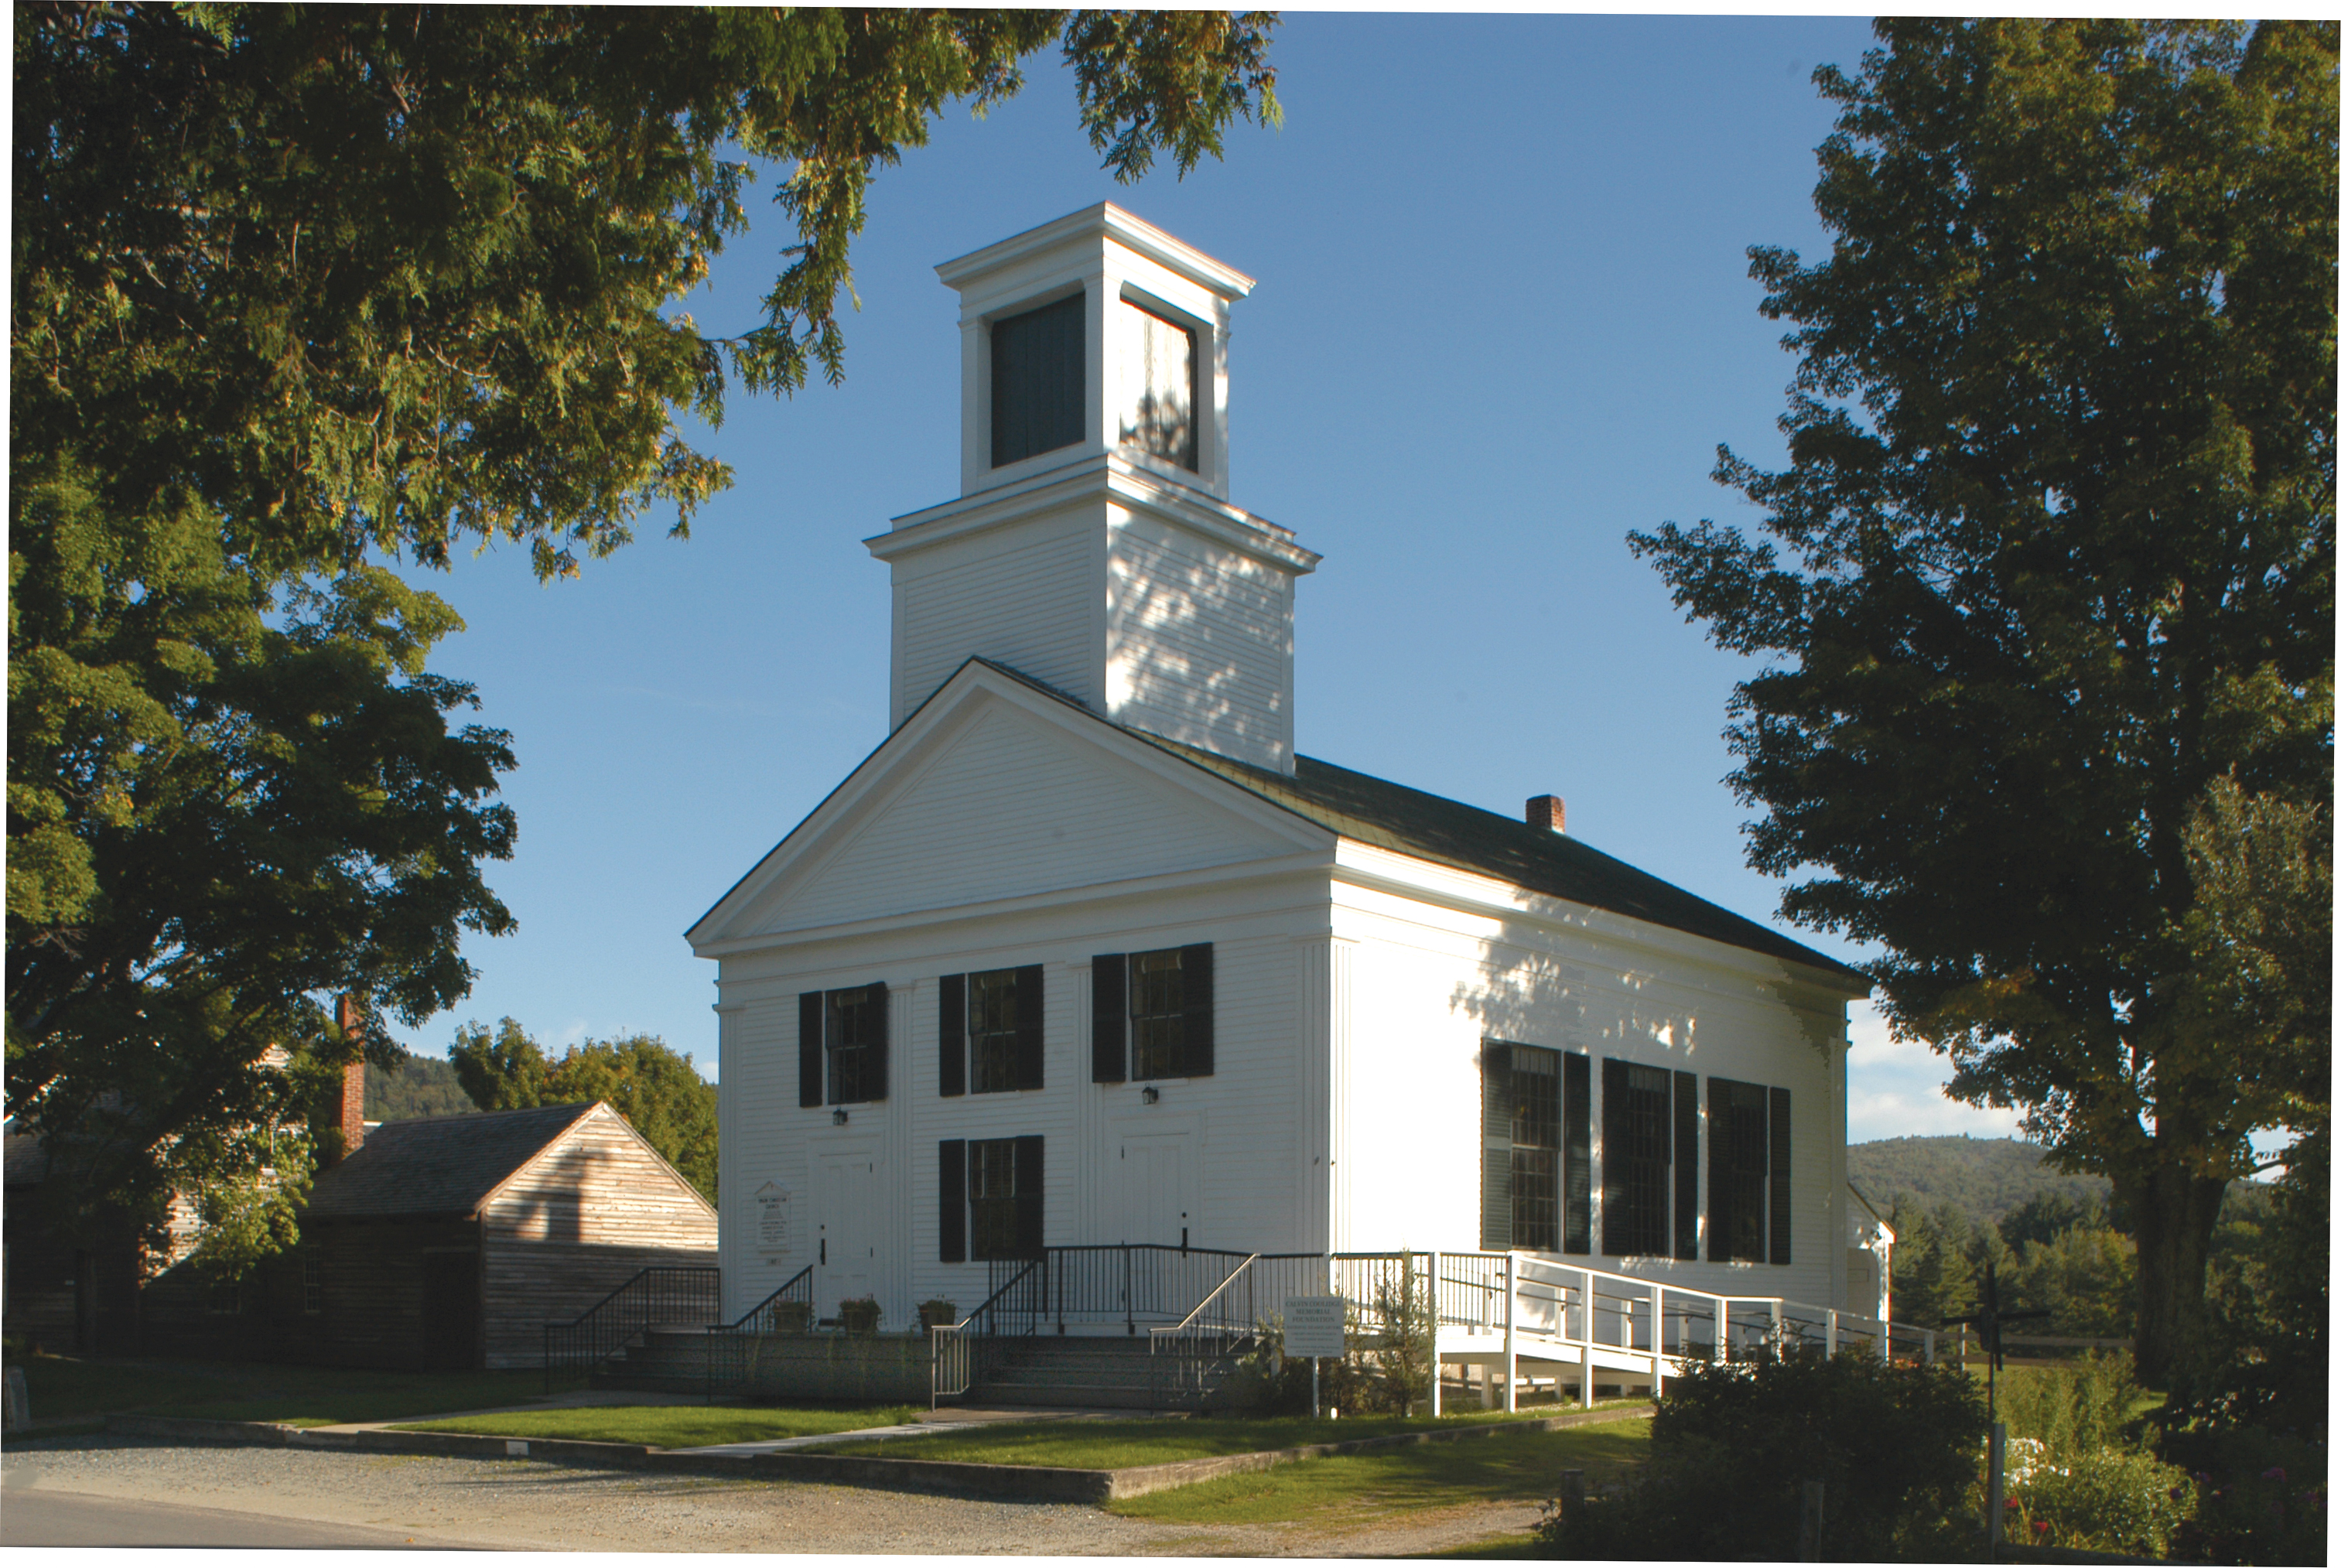 Plymouth Union Church